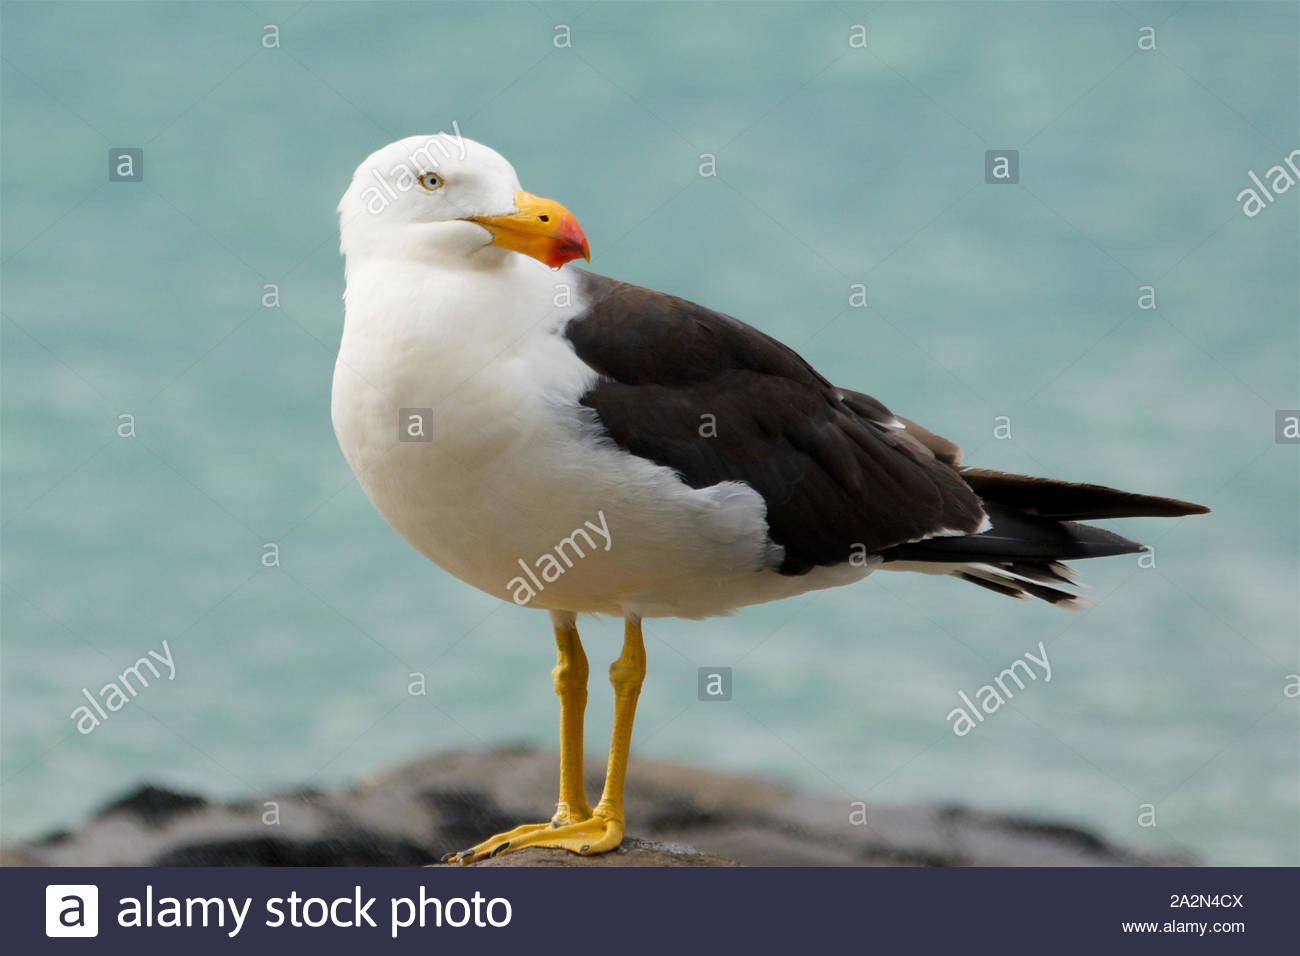 Pacific Gull (Larus pacificus) Stock Photo